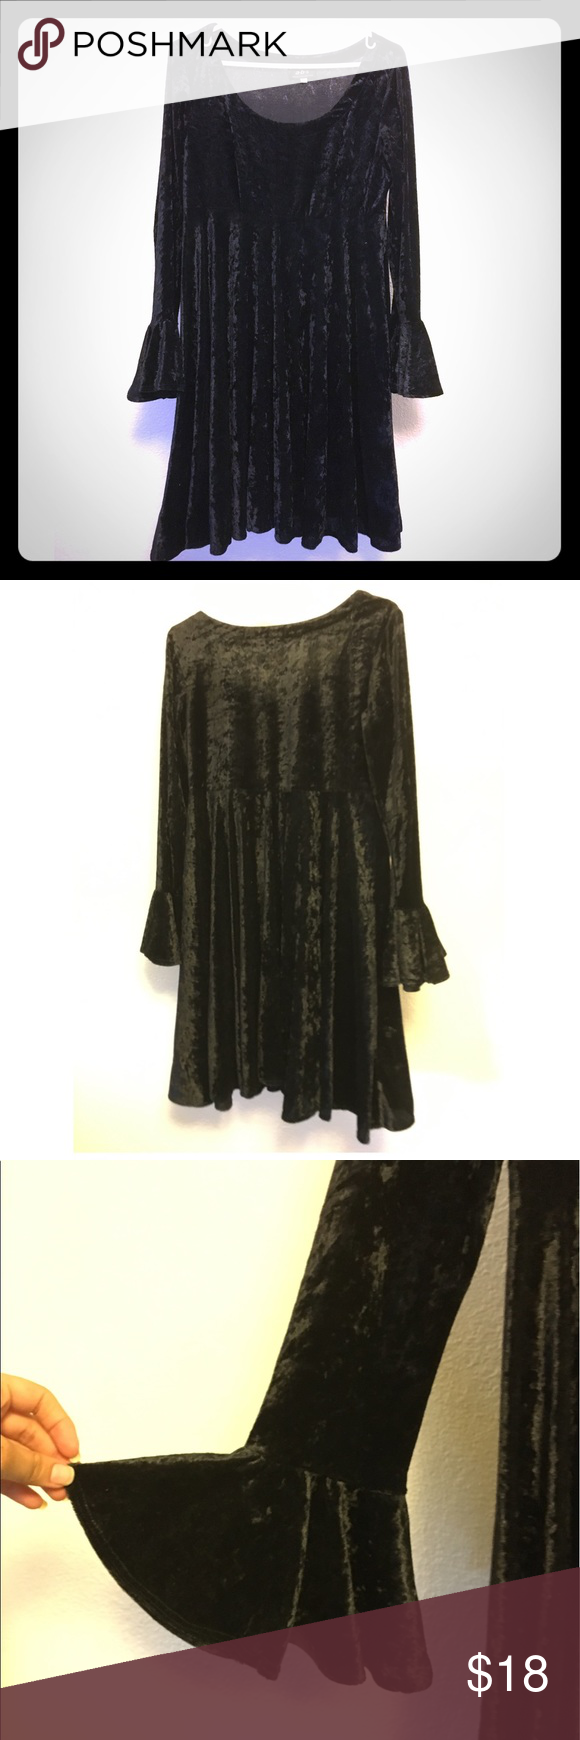 """Wicked Dress It's witching hour, great condition dress. Crushed velvet look fabric. Center Length: 29"""" Waist: 16 1/2"""" Chest: 17 1/2"""" Sleeve Length: 23 3/4"""" Vintage Dresses Long Sleeve"""